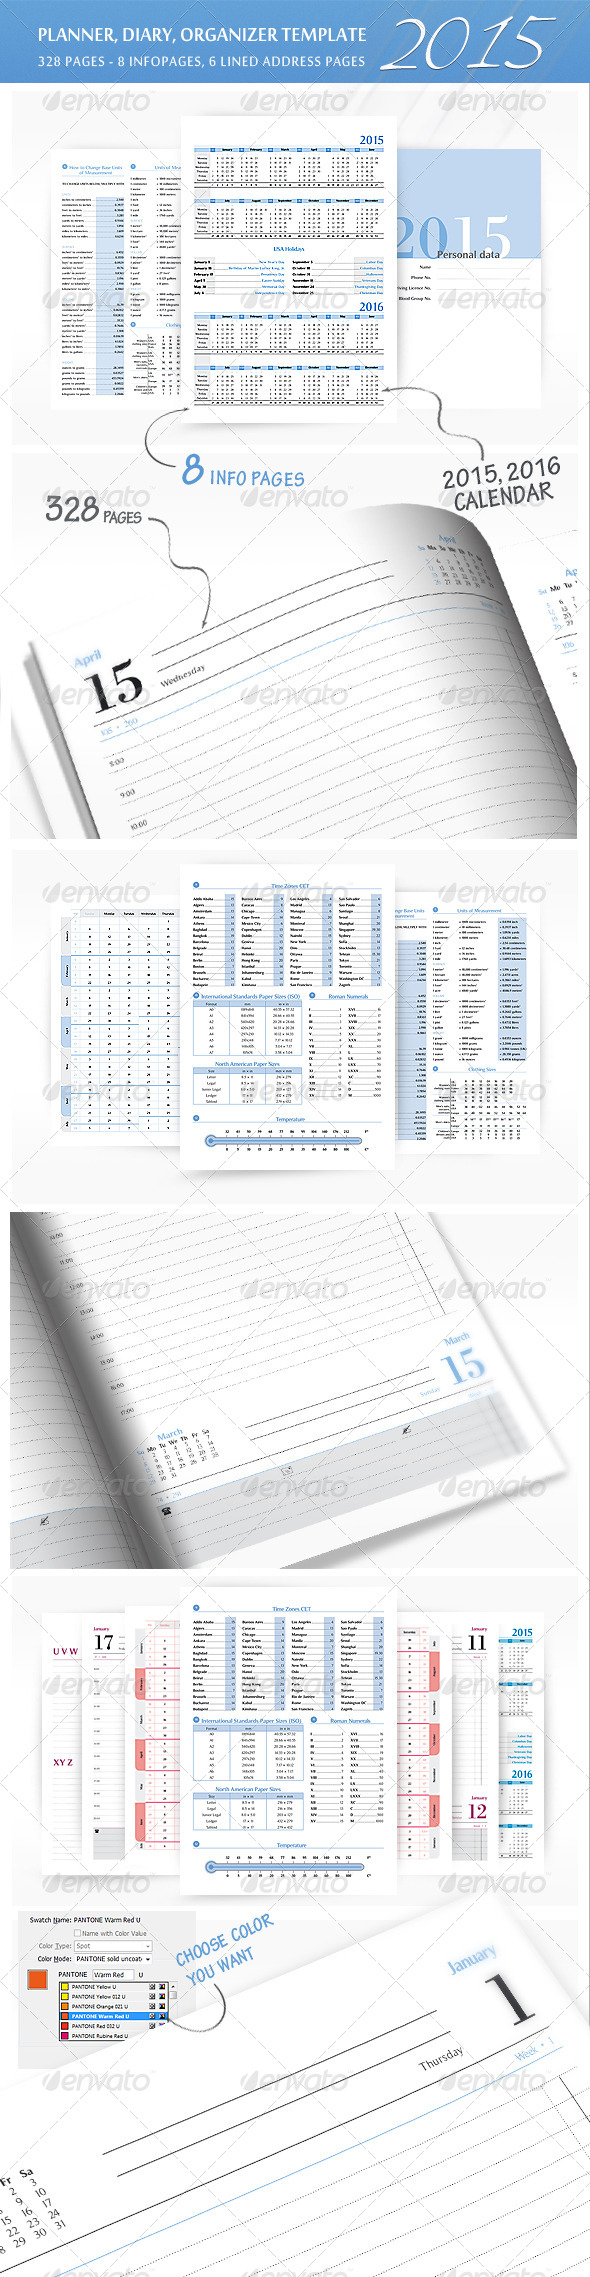 GraphicRiver Planner-Diary-Organizer 2015 7788091